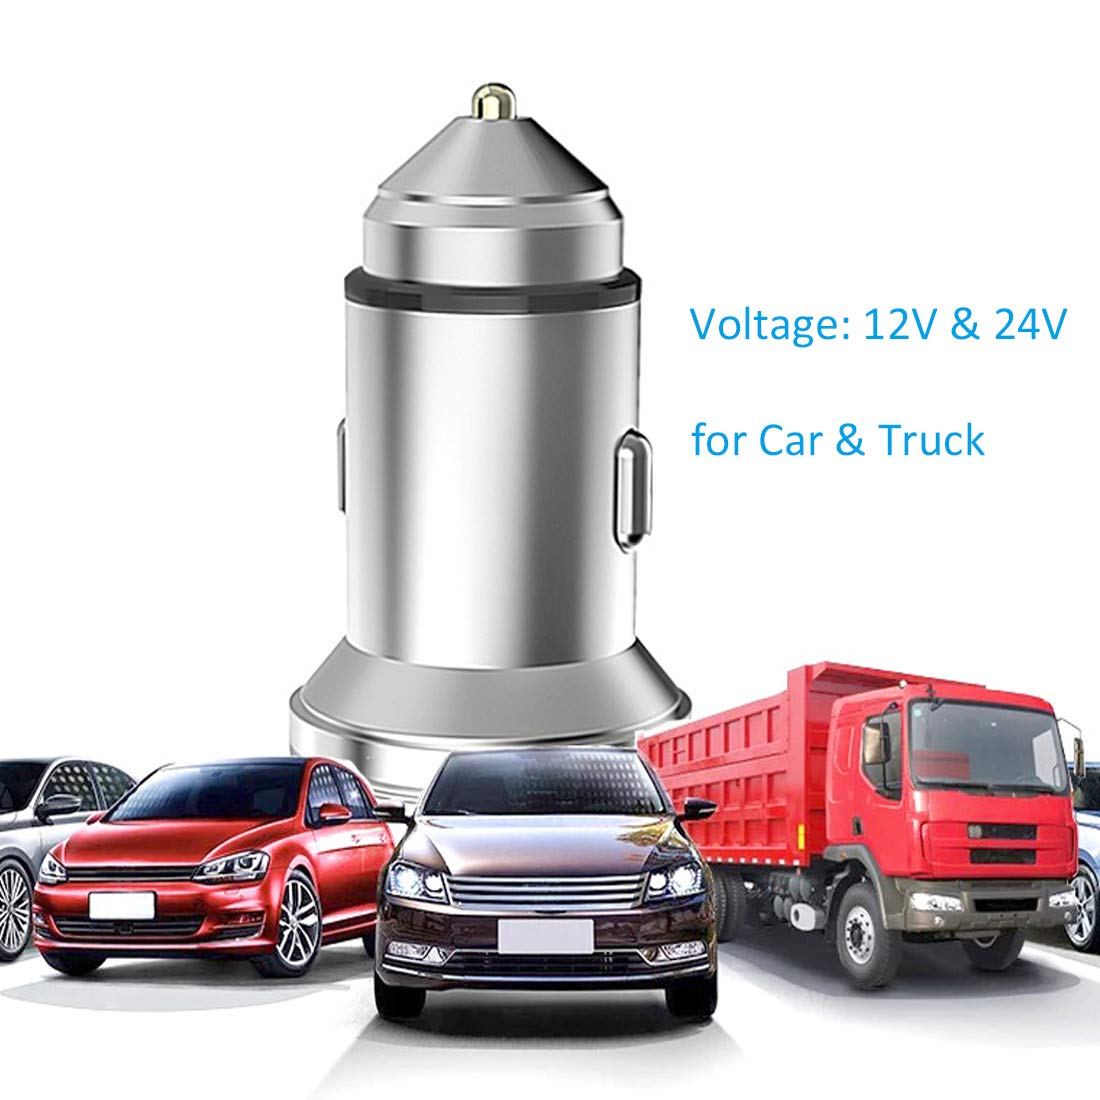 Henzxi Car Charger Metal QC3.0//2.4A Dual USB Ports Car Vehicle Adapter for for iPhone /& Android Smartphone